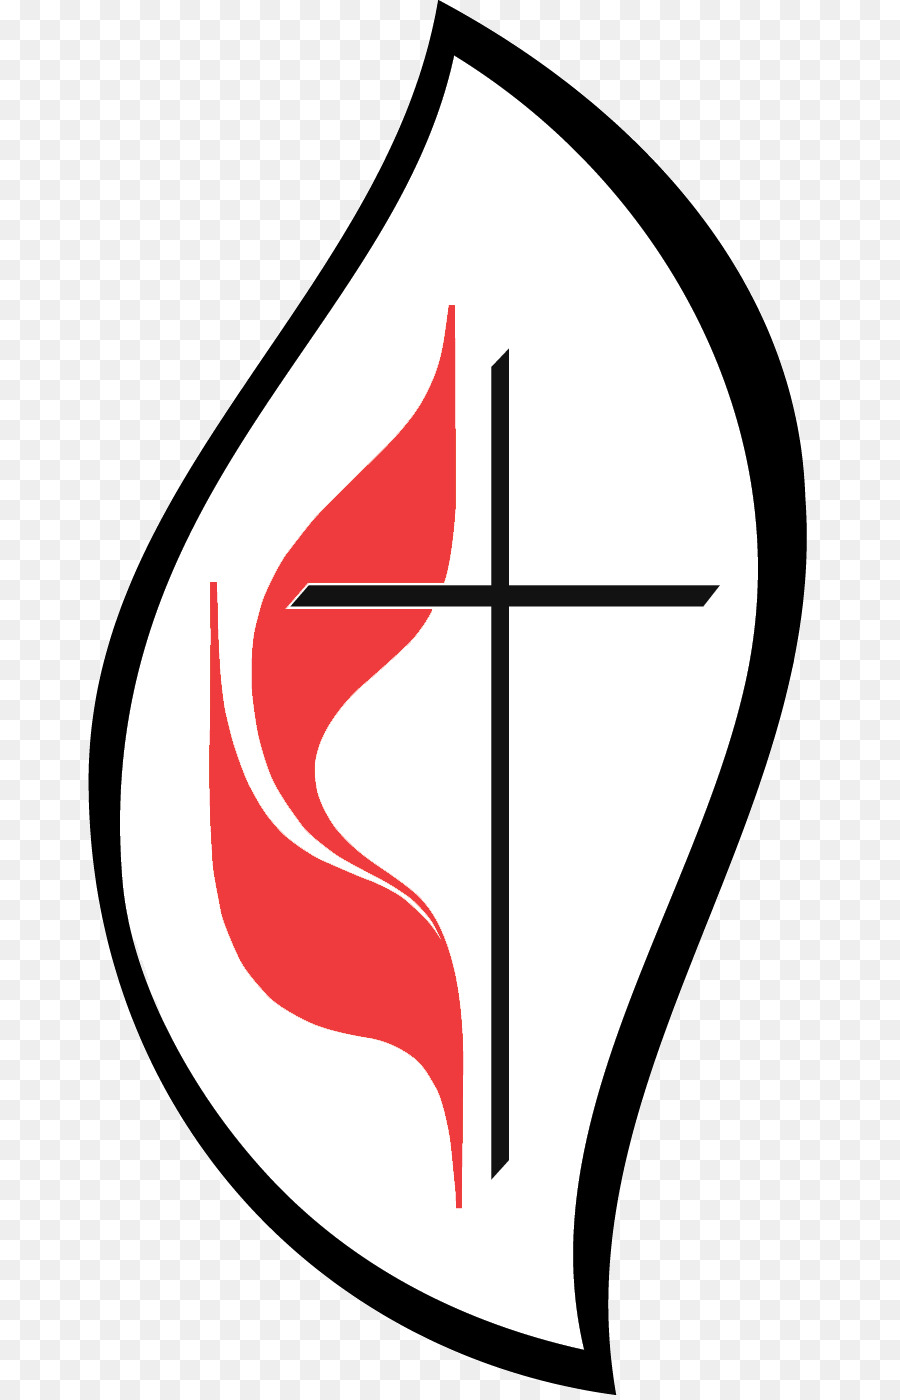 Person Logo Png Download 726 1395 Free Transparent United Methodist Church Png Download Cleanpng Kisspng